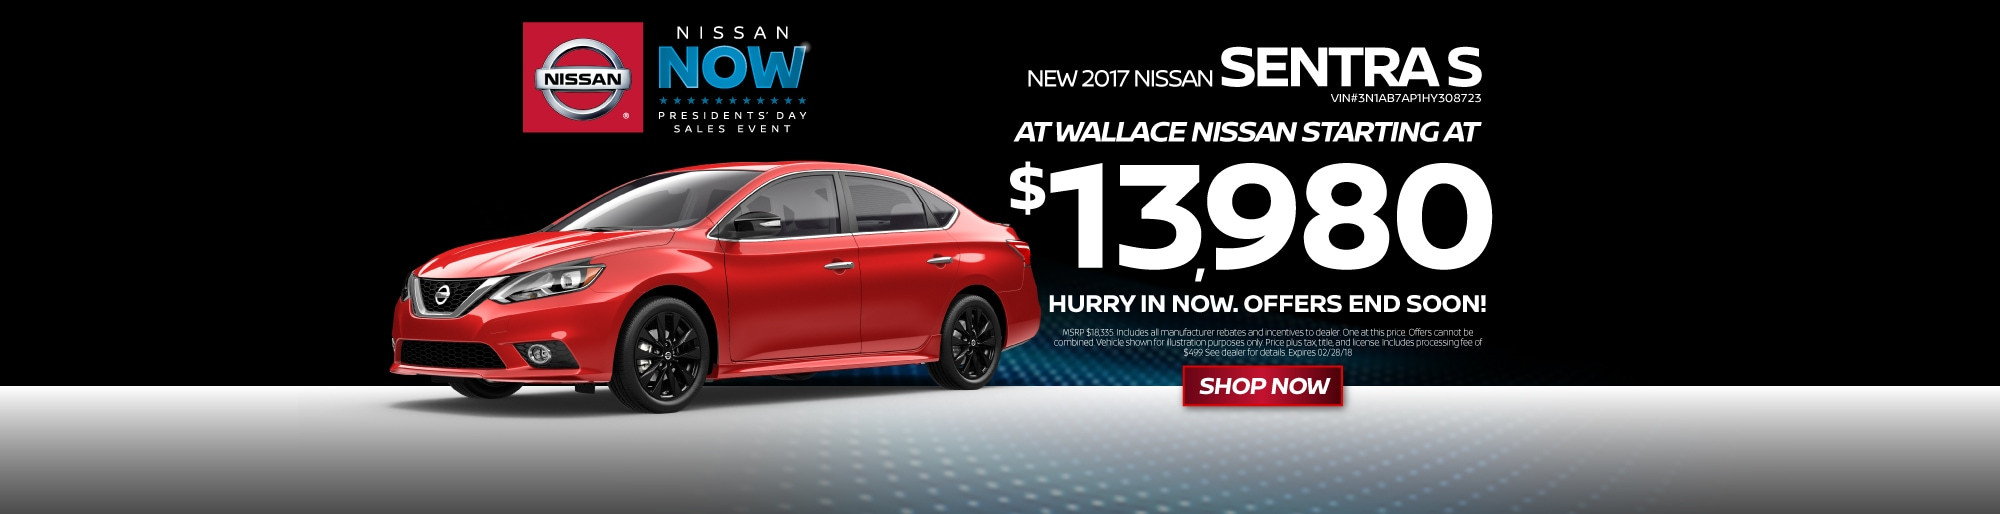 Kingsport's Wallace Nissan   New and Used Nissan Cars